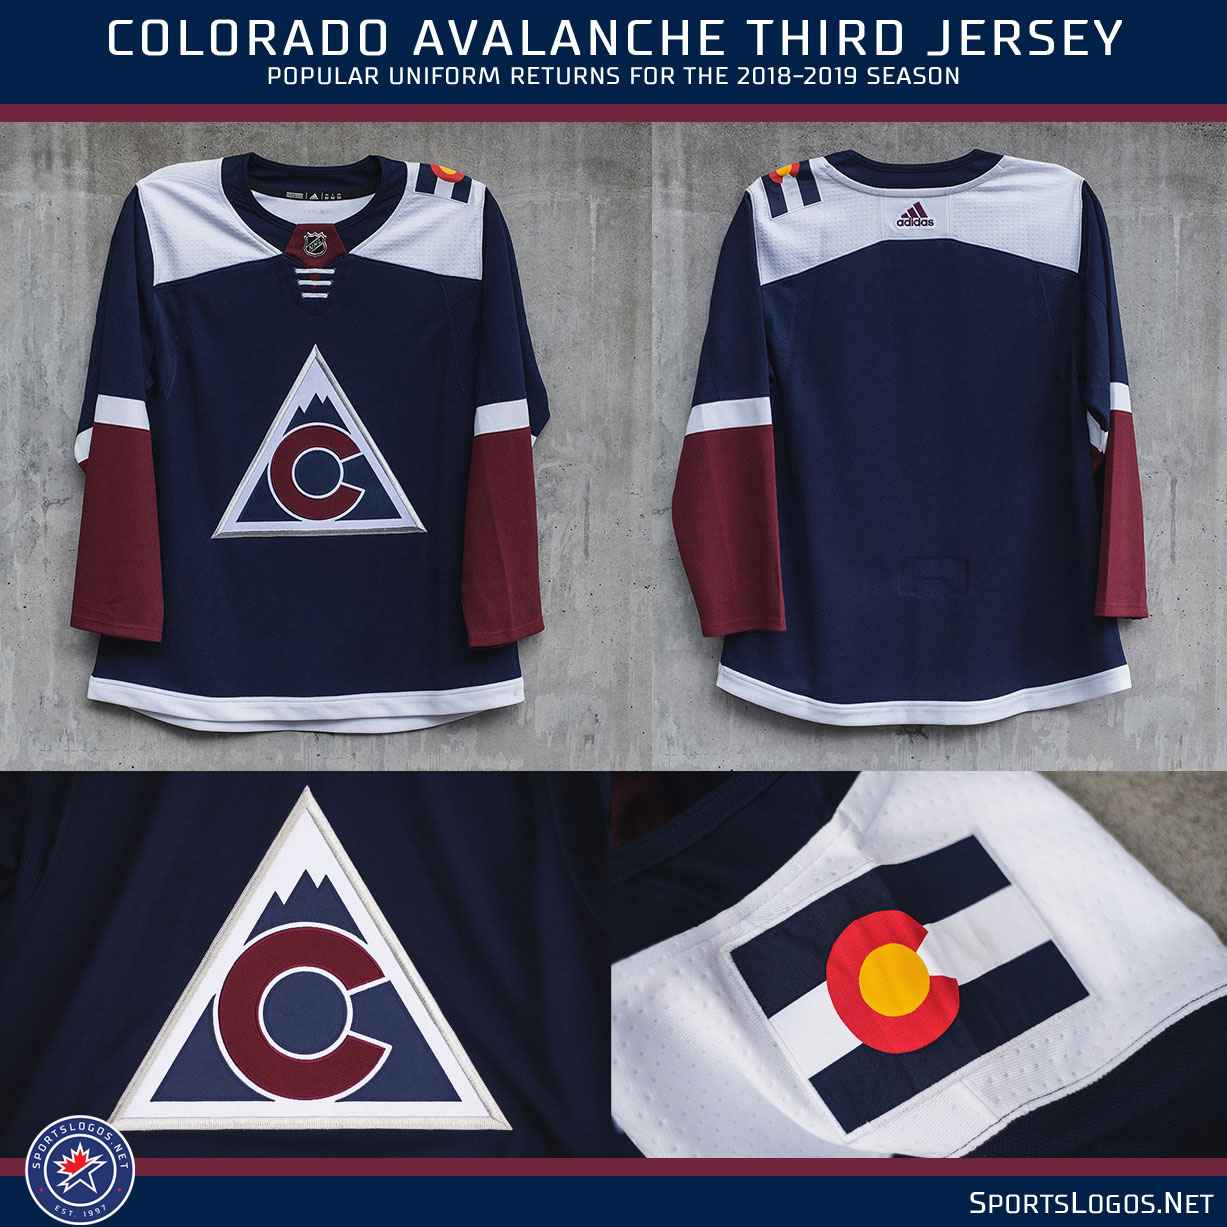 detailed look 915d6 c1c76 Colorado Avalanche Third Alternate Jersey 2018-2019 New ...